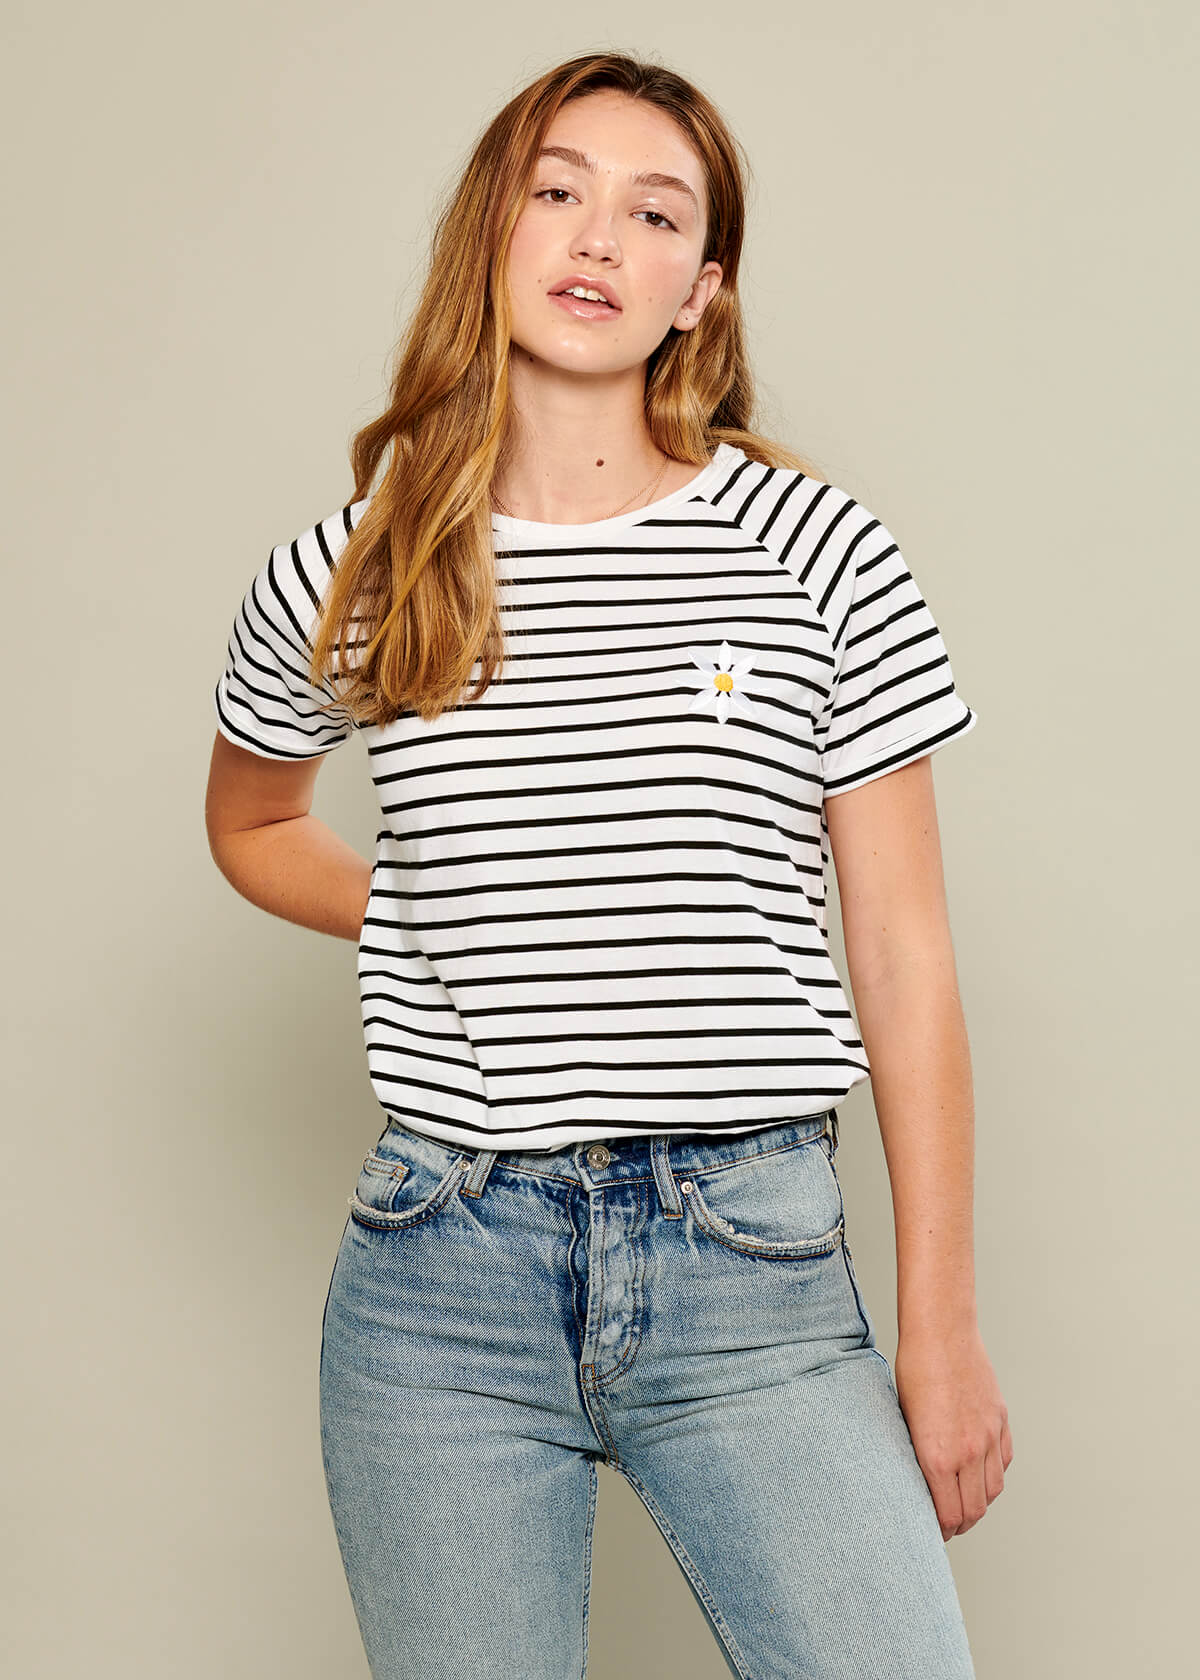 Jackie - Raglan Sleeve Tee - Daisy - White and Black